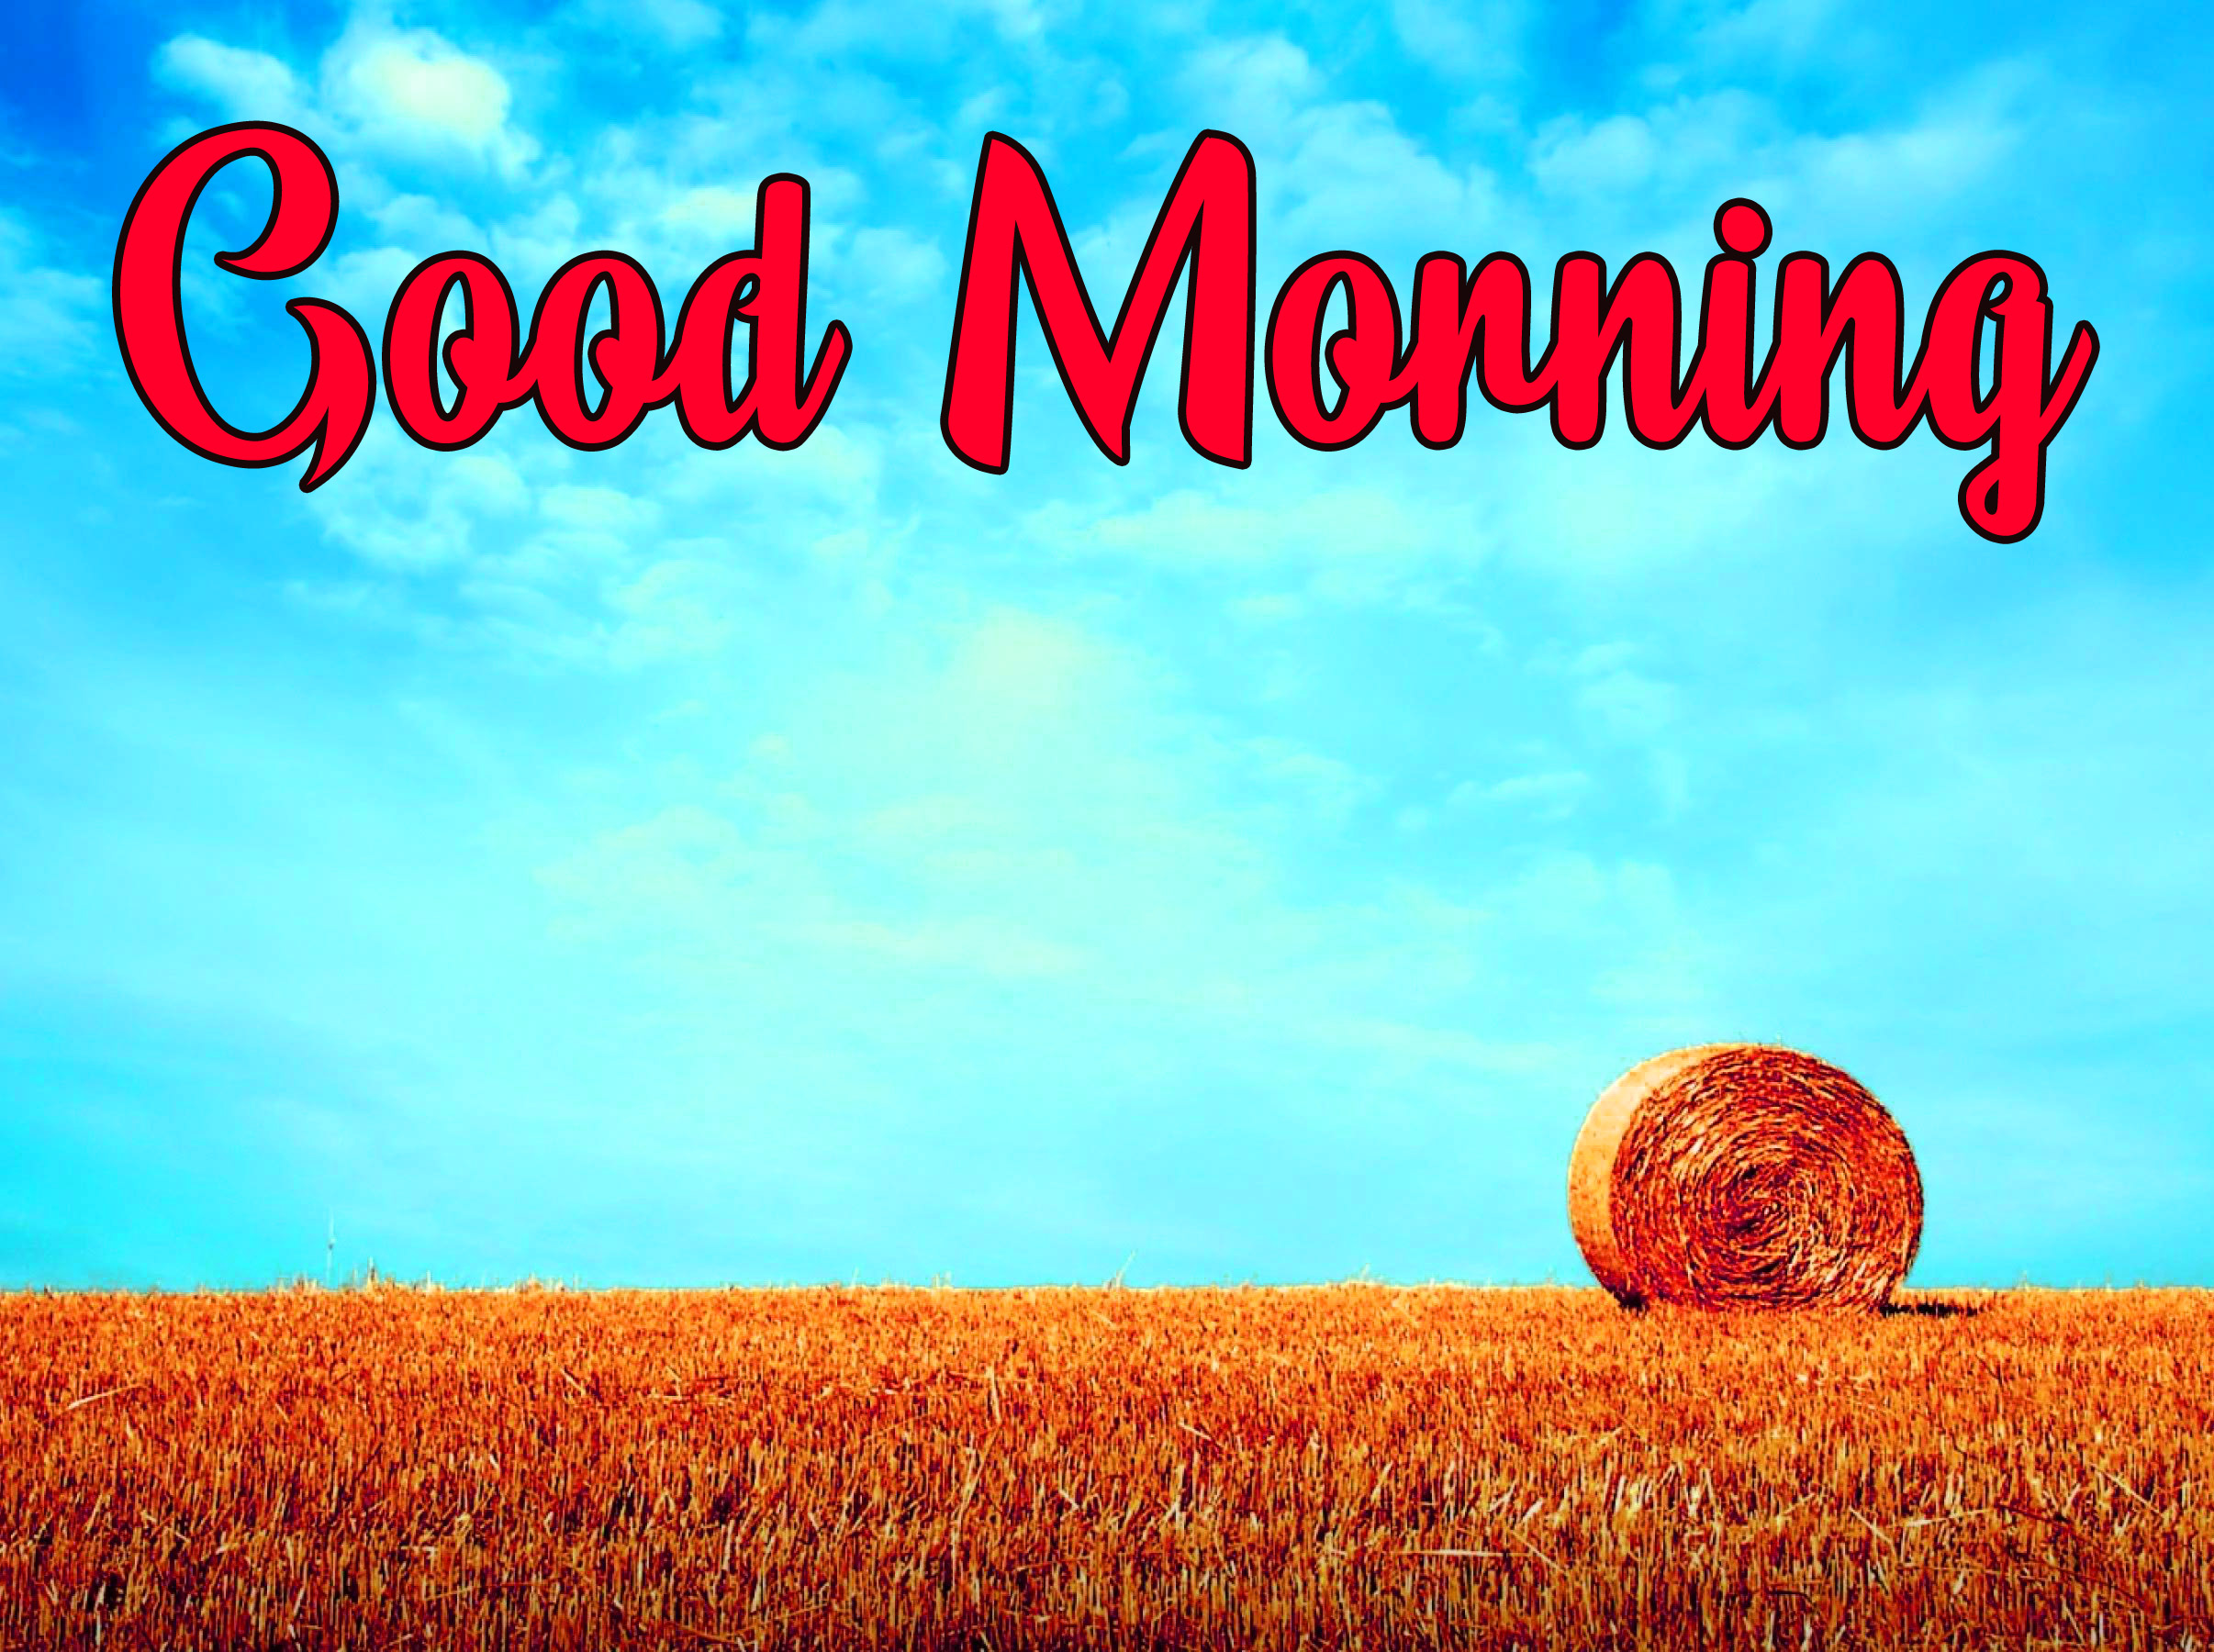 good morning photo free download